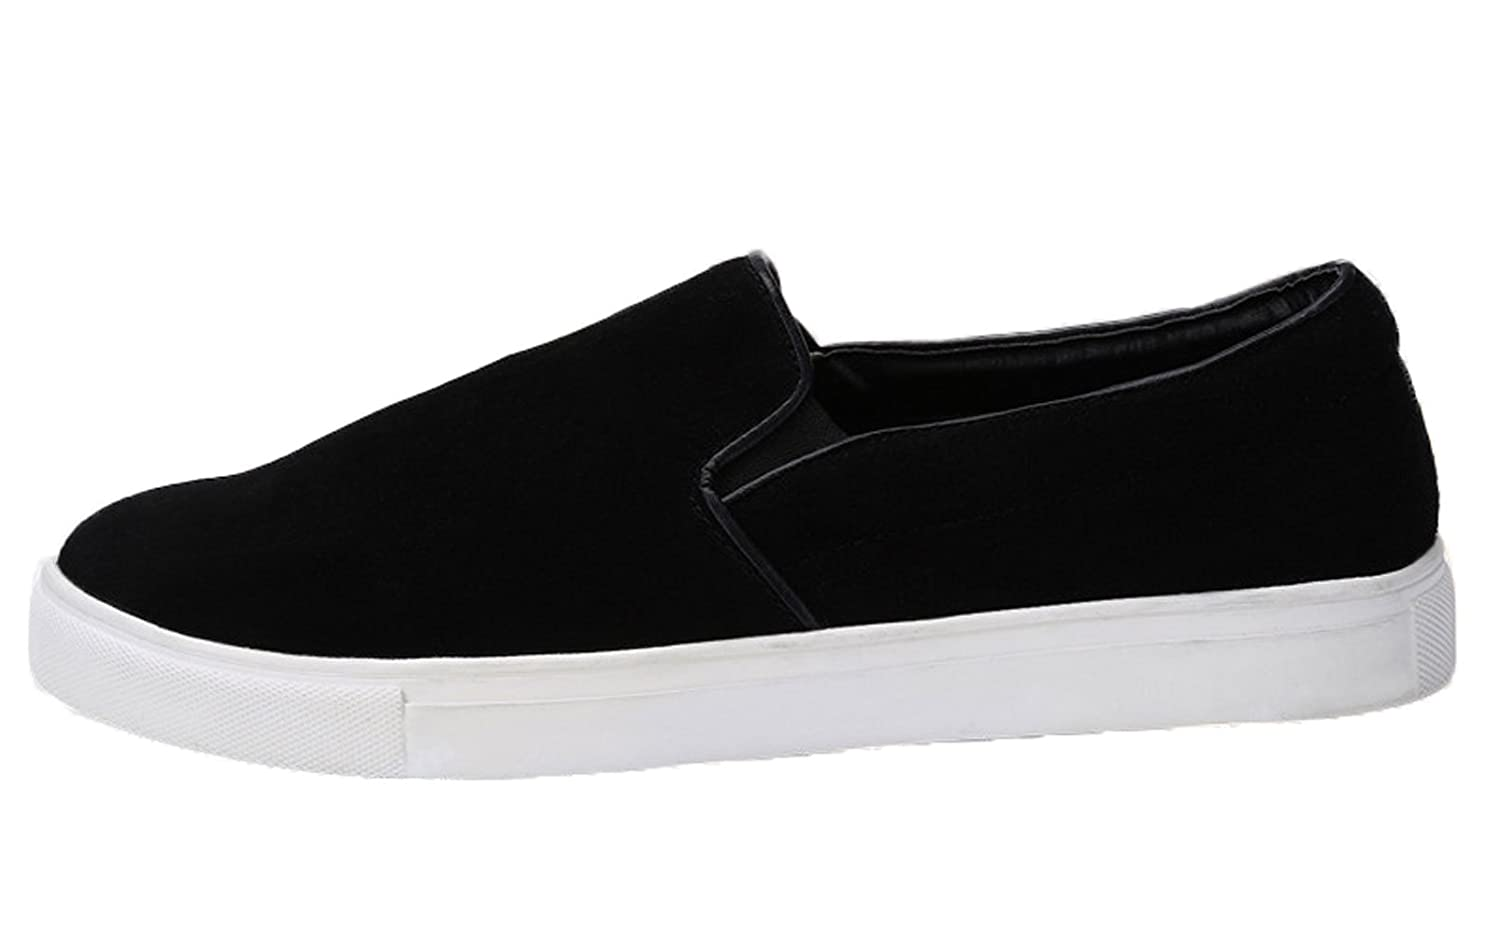 Plaid&Plain Men's Suede Leather Loafers Slip-on Flats Sneaker Shoes